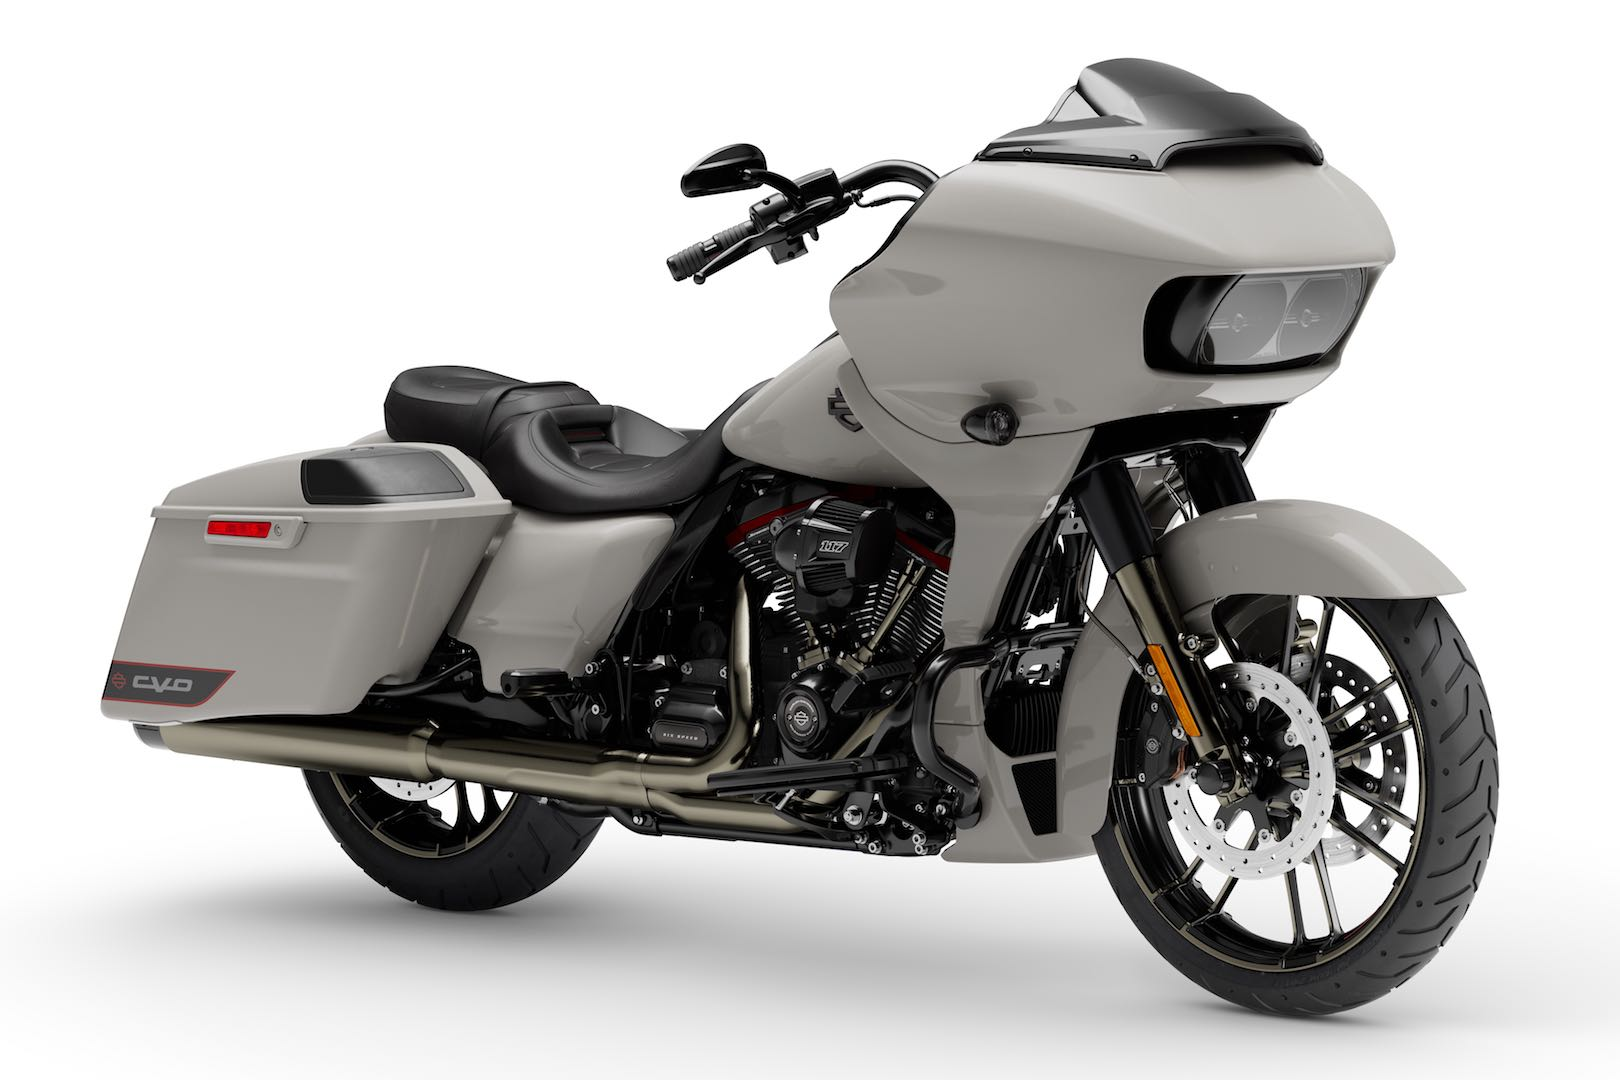 2020 Harley Davidson Cvo Road Glide Unveiled First Look